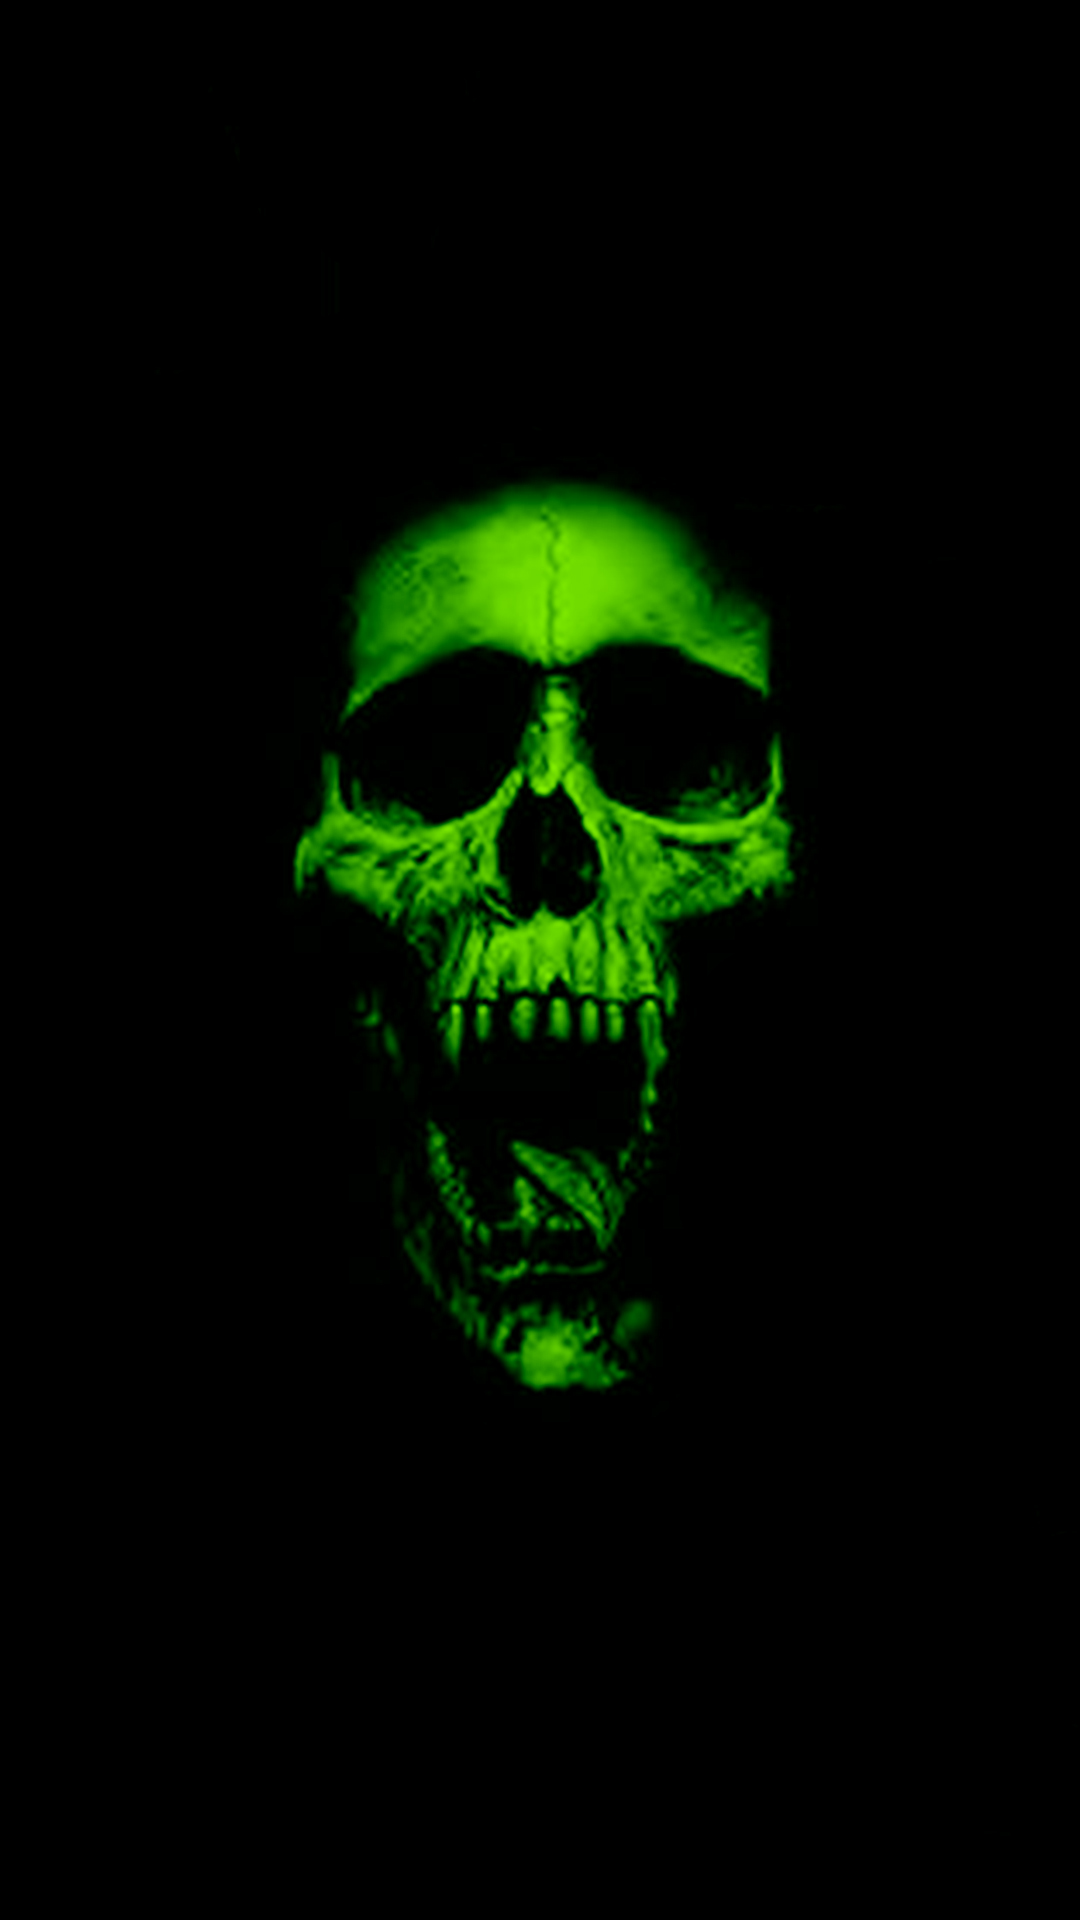 Top Wallpaper Halloween Smartphone - green-skull-9658  Collection_351354.jpg